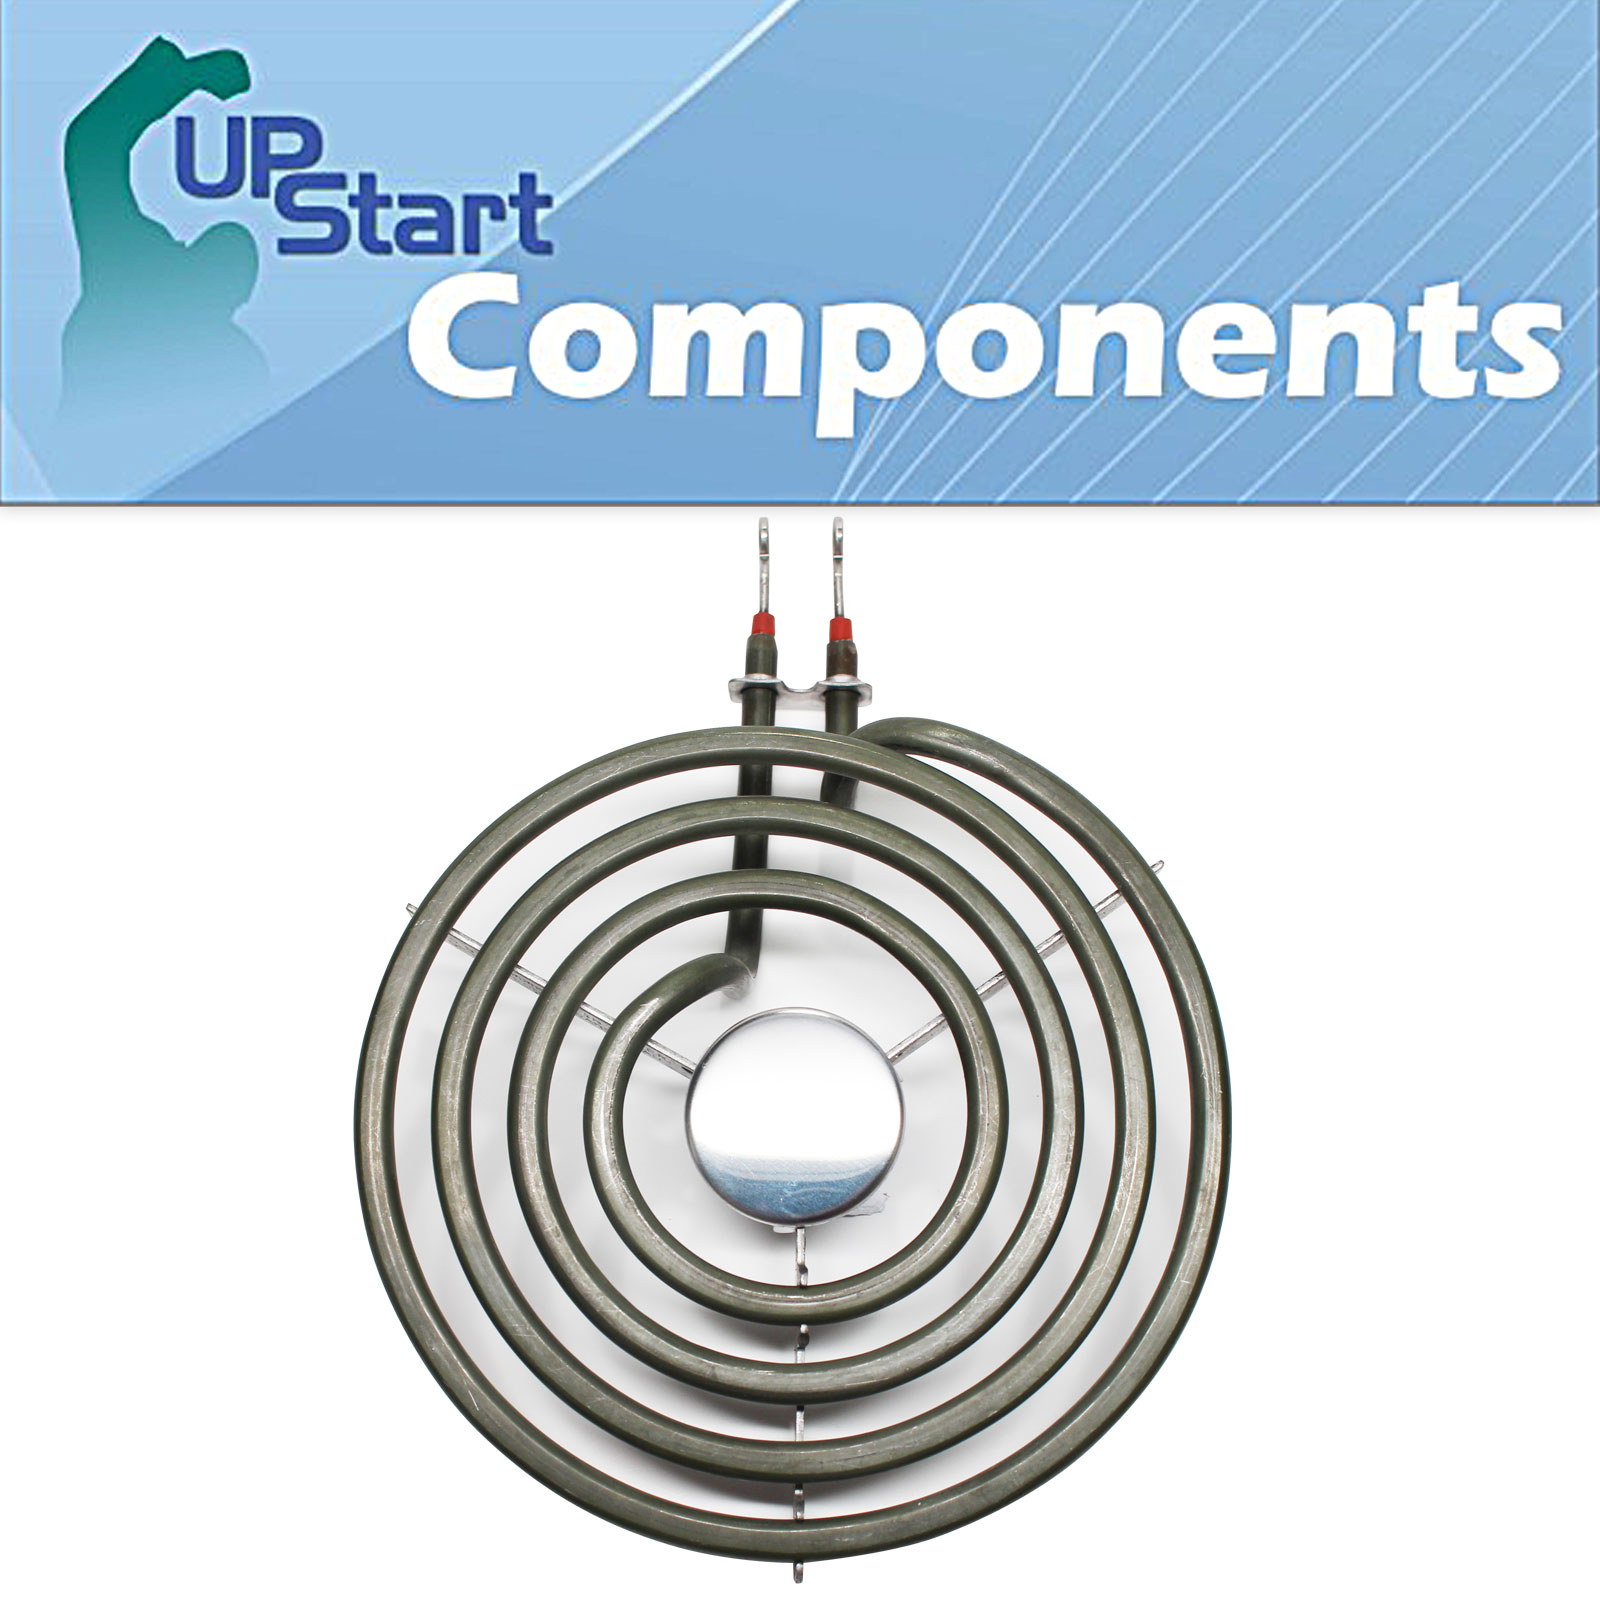 Replacement Whirlpool RF302BXDW0 6 inch 4 Turns Surface Burner Element - Compatible Whirlpool 660532 Heating Element for Range, Stove & Cooktop - image 4 de 4